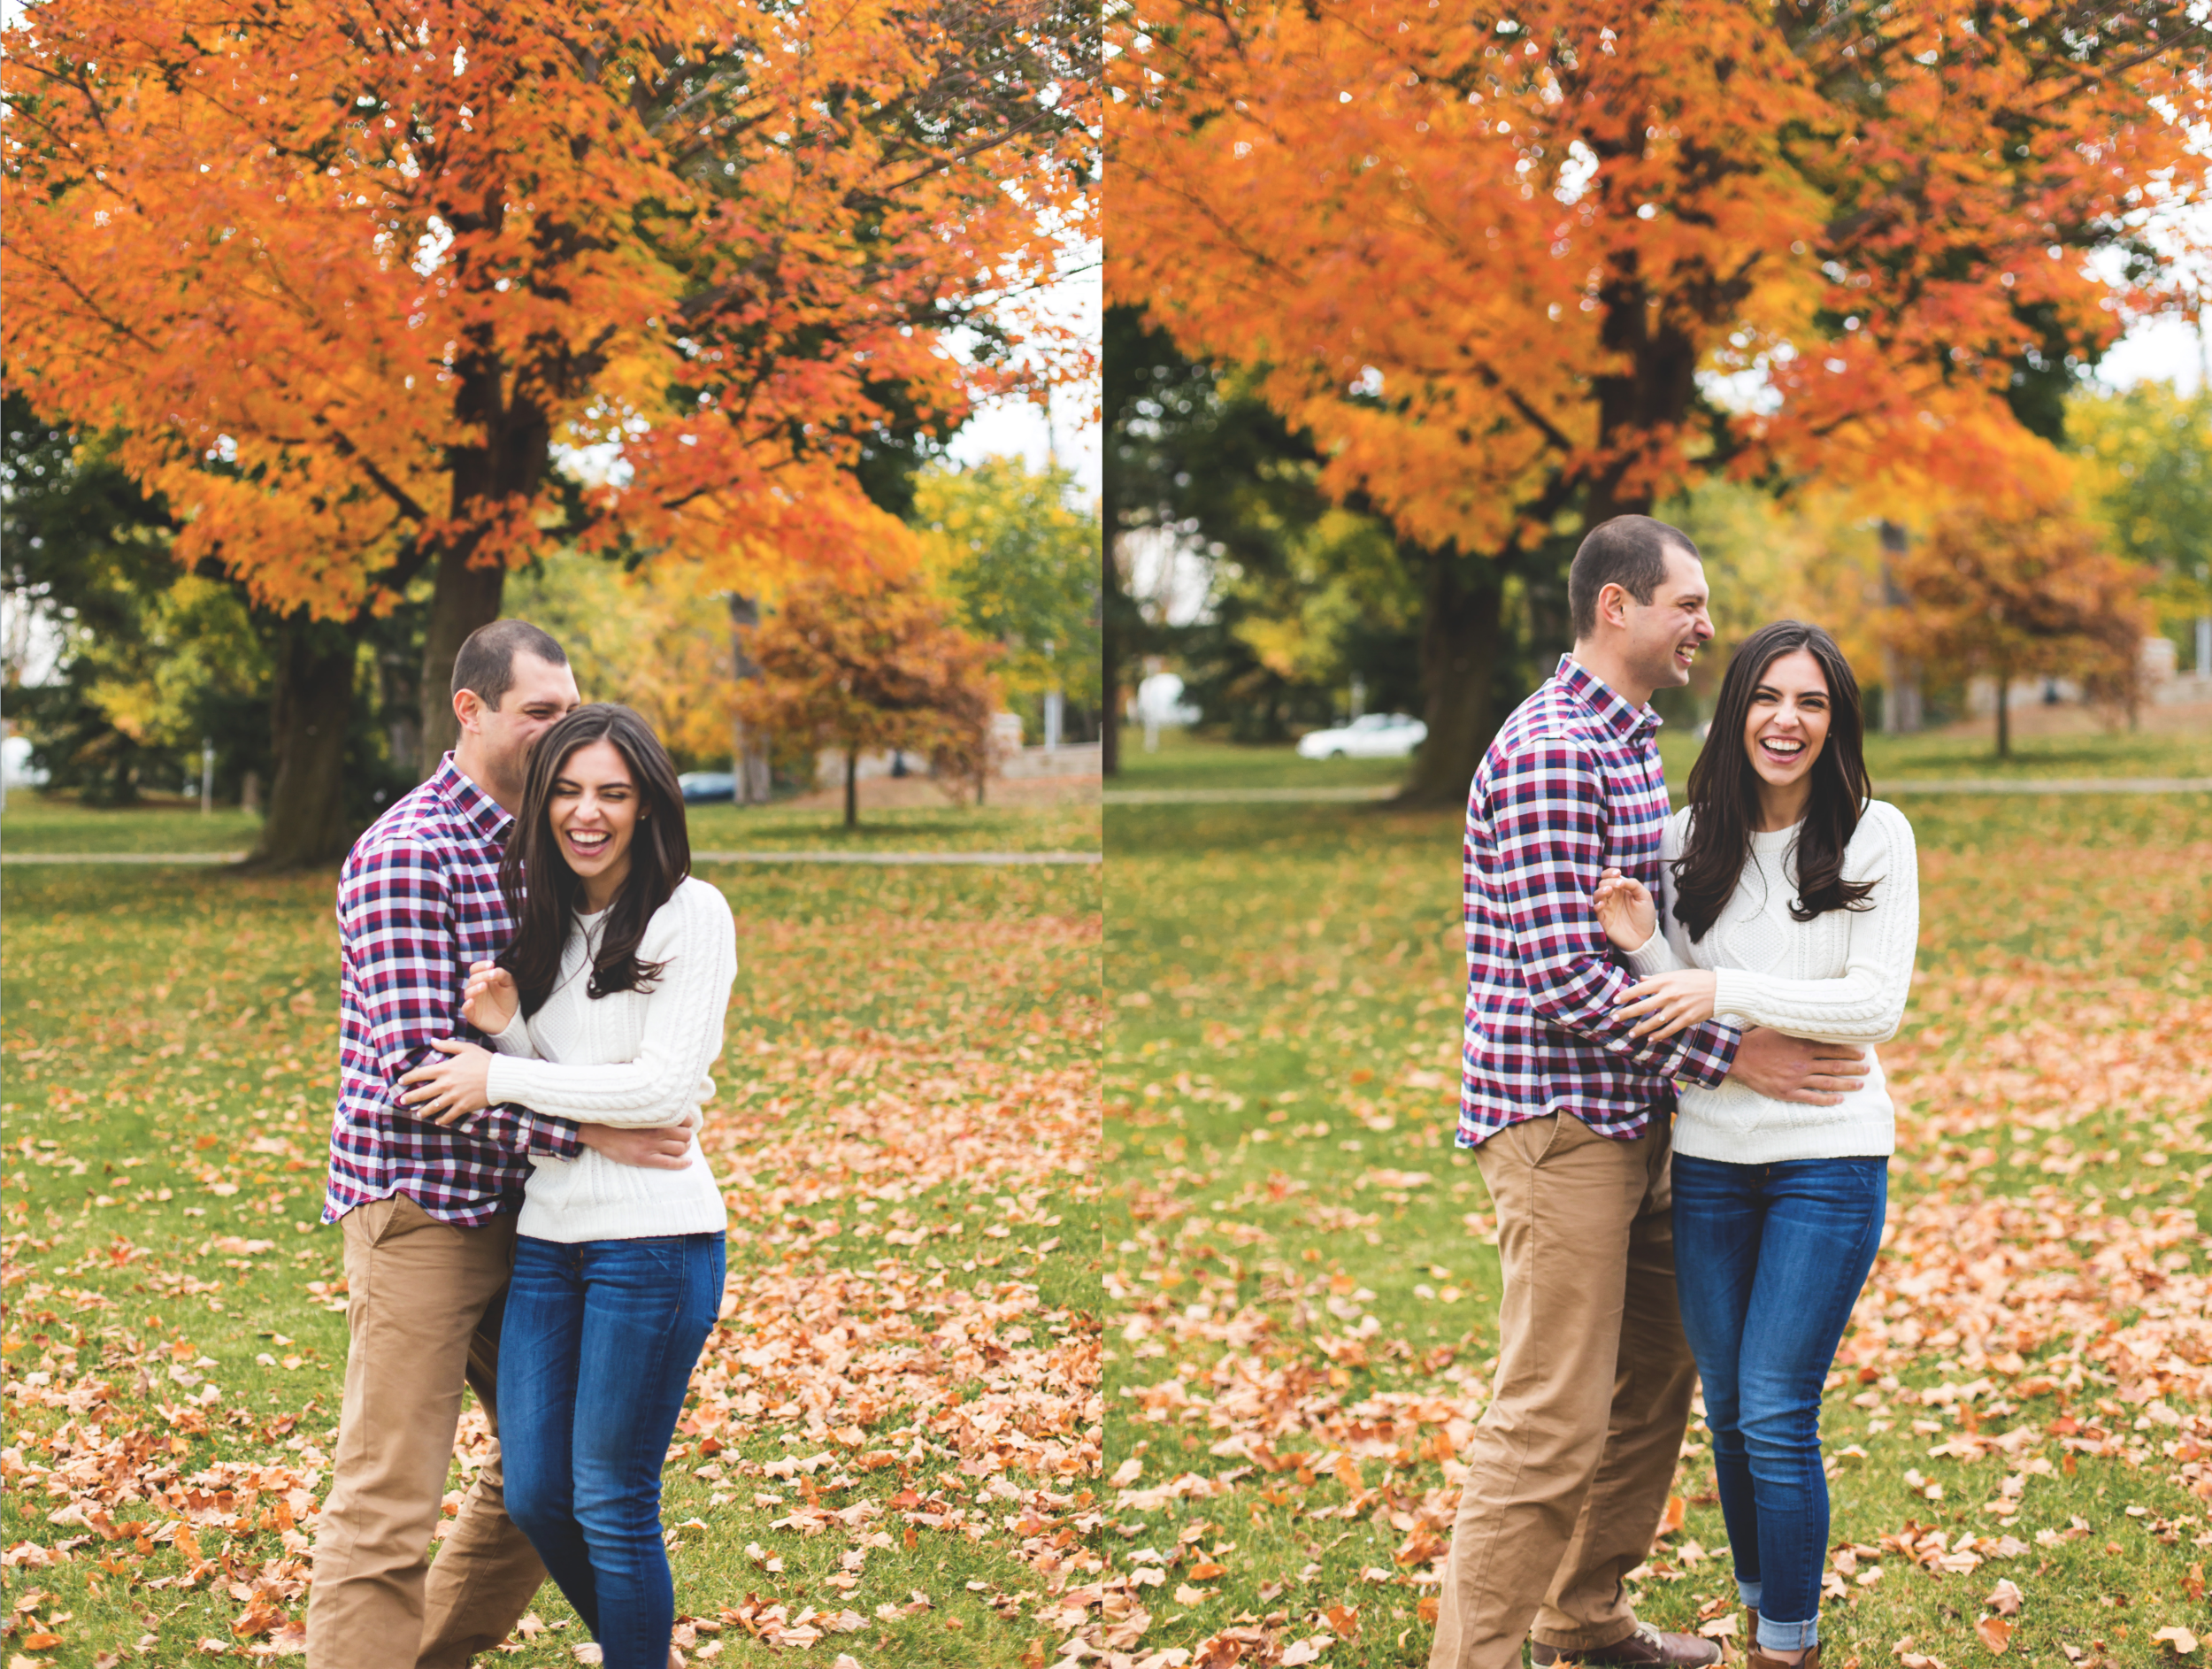 Engagement-Photography-Guelph-University-Campus-Hamilton-Burlington-Oakville-Niagara-Toronto-Wedding-Photographer-Photo-Image-17.png